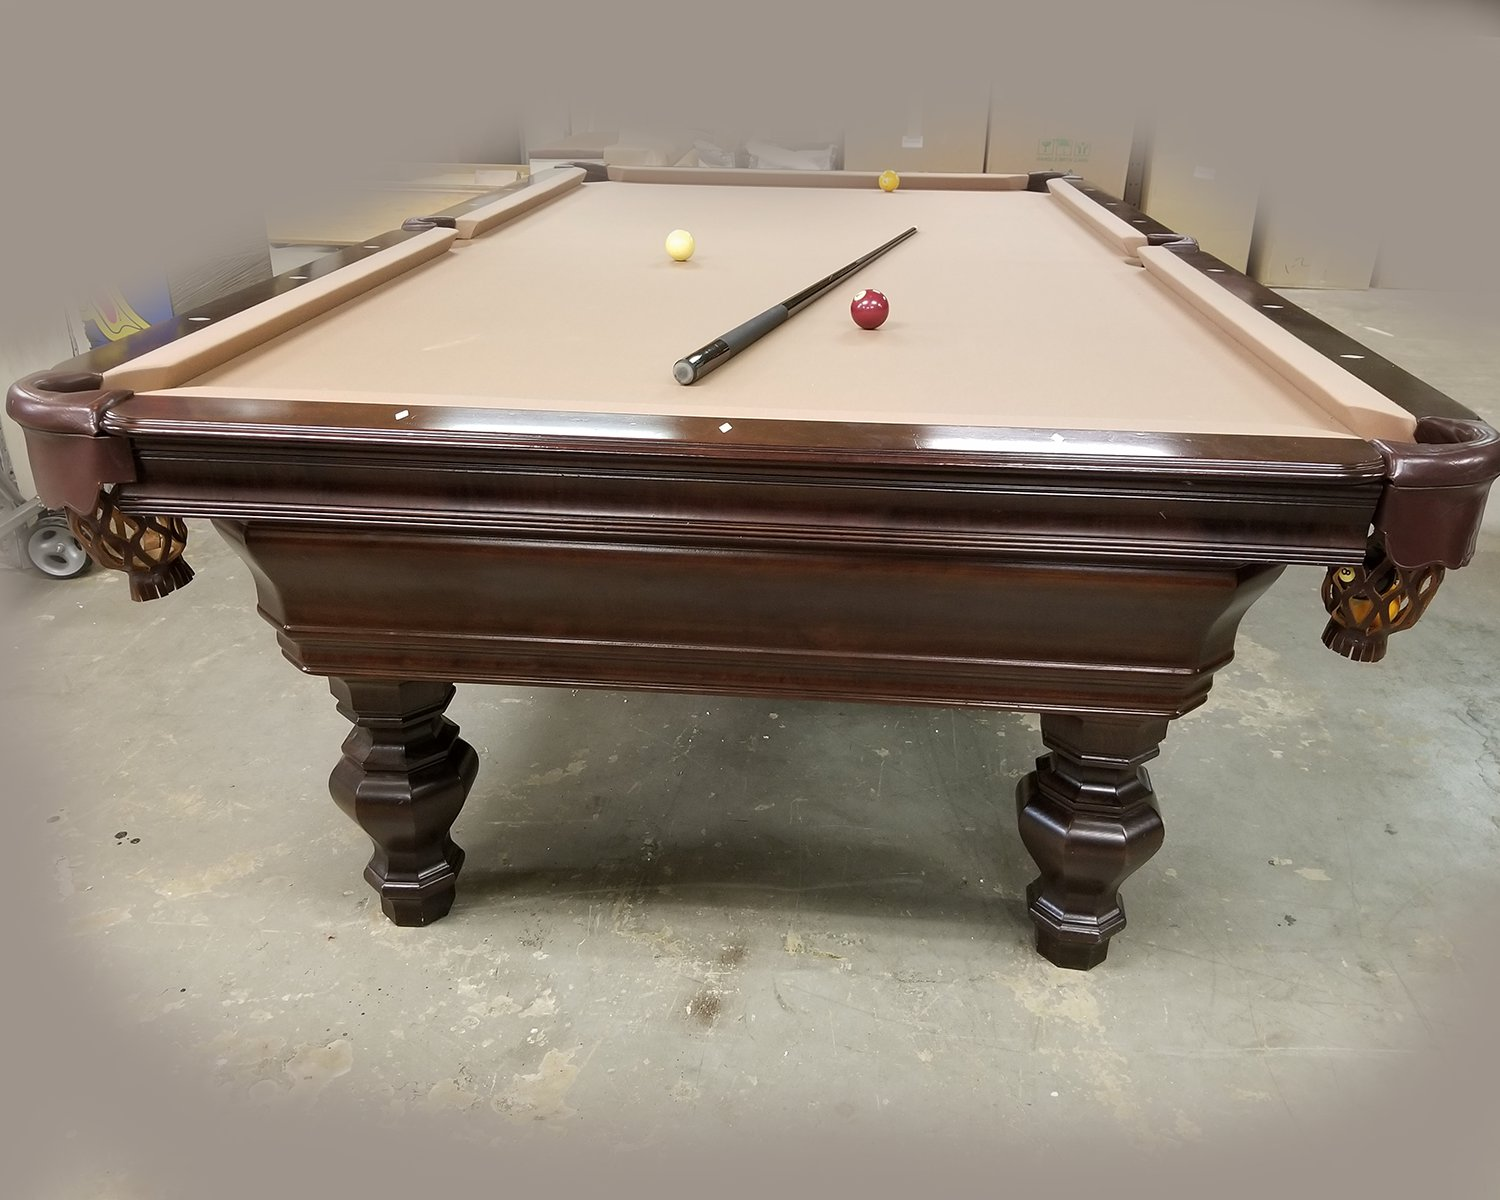 How To Take A Pool Table Apart Best Appartment Image - How to take apart a pool table